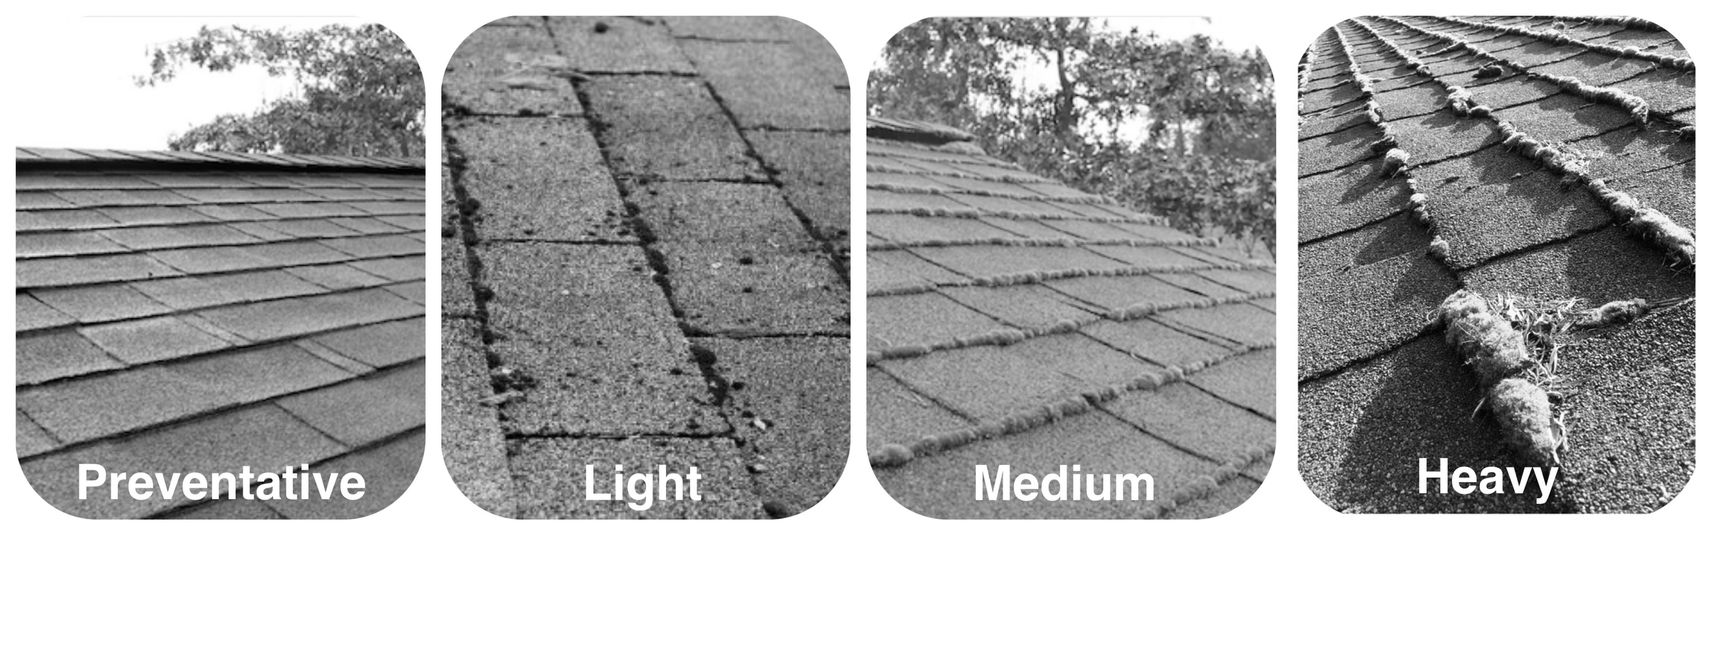 Choose between Preventative, Light, Medium, or Heavy moss conditions on the roof.